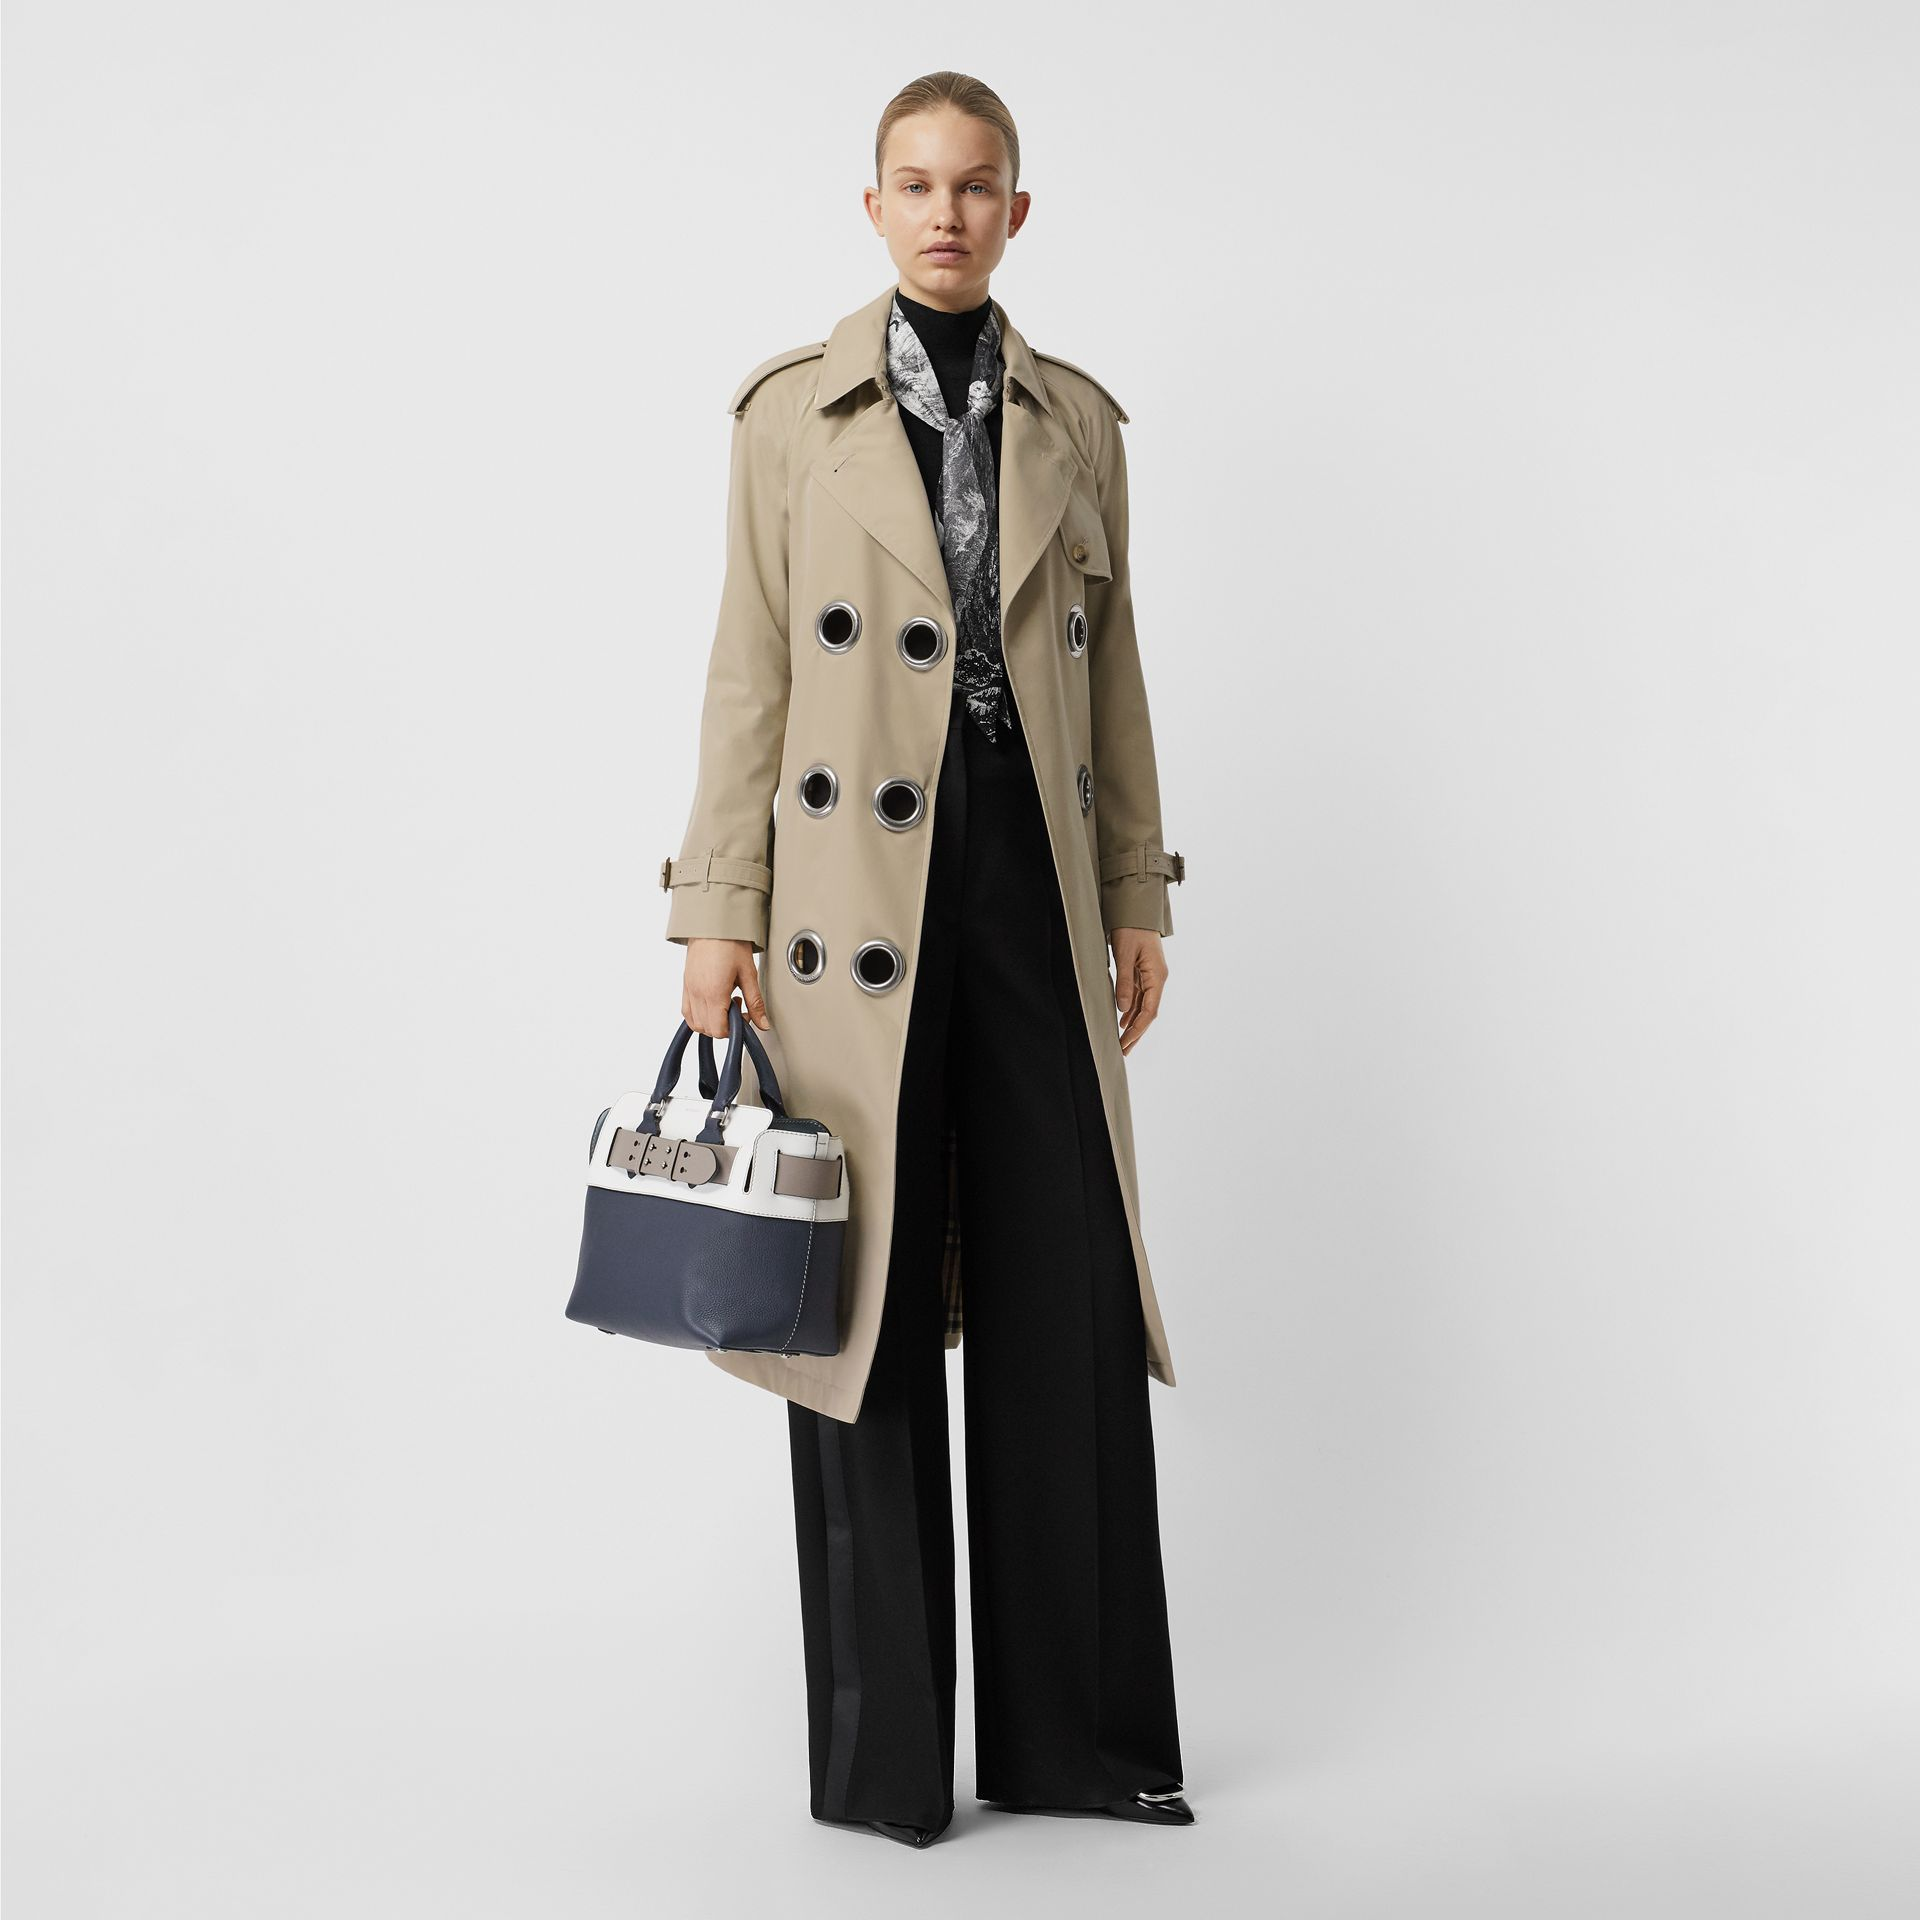 Grommet Detail Cotton Gabardine Trench Coat in Stone - Women | Burberry United Kingdom - gallery image 0